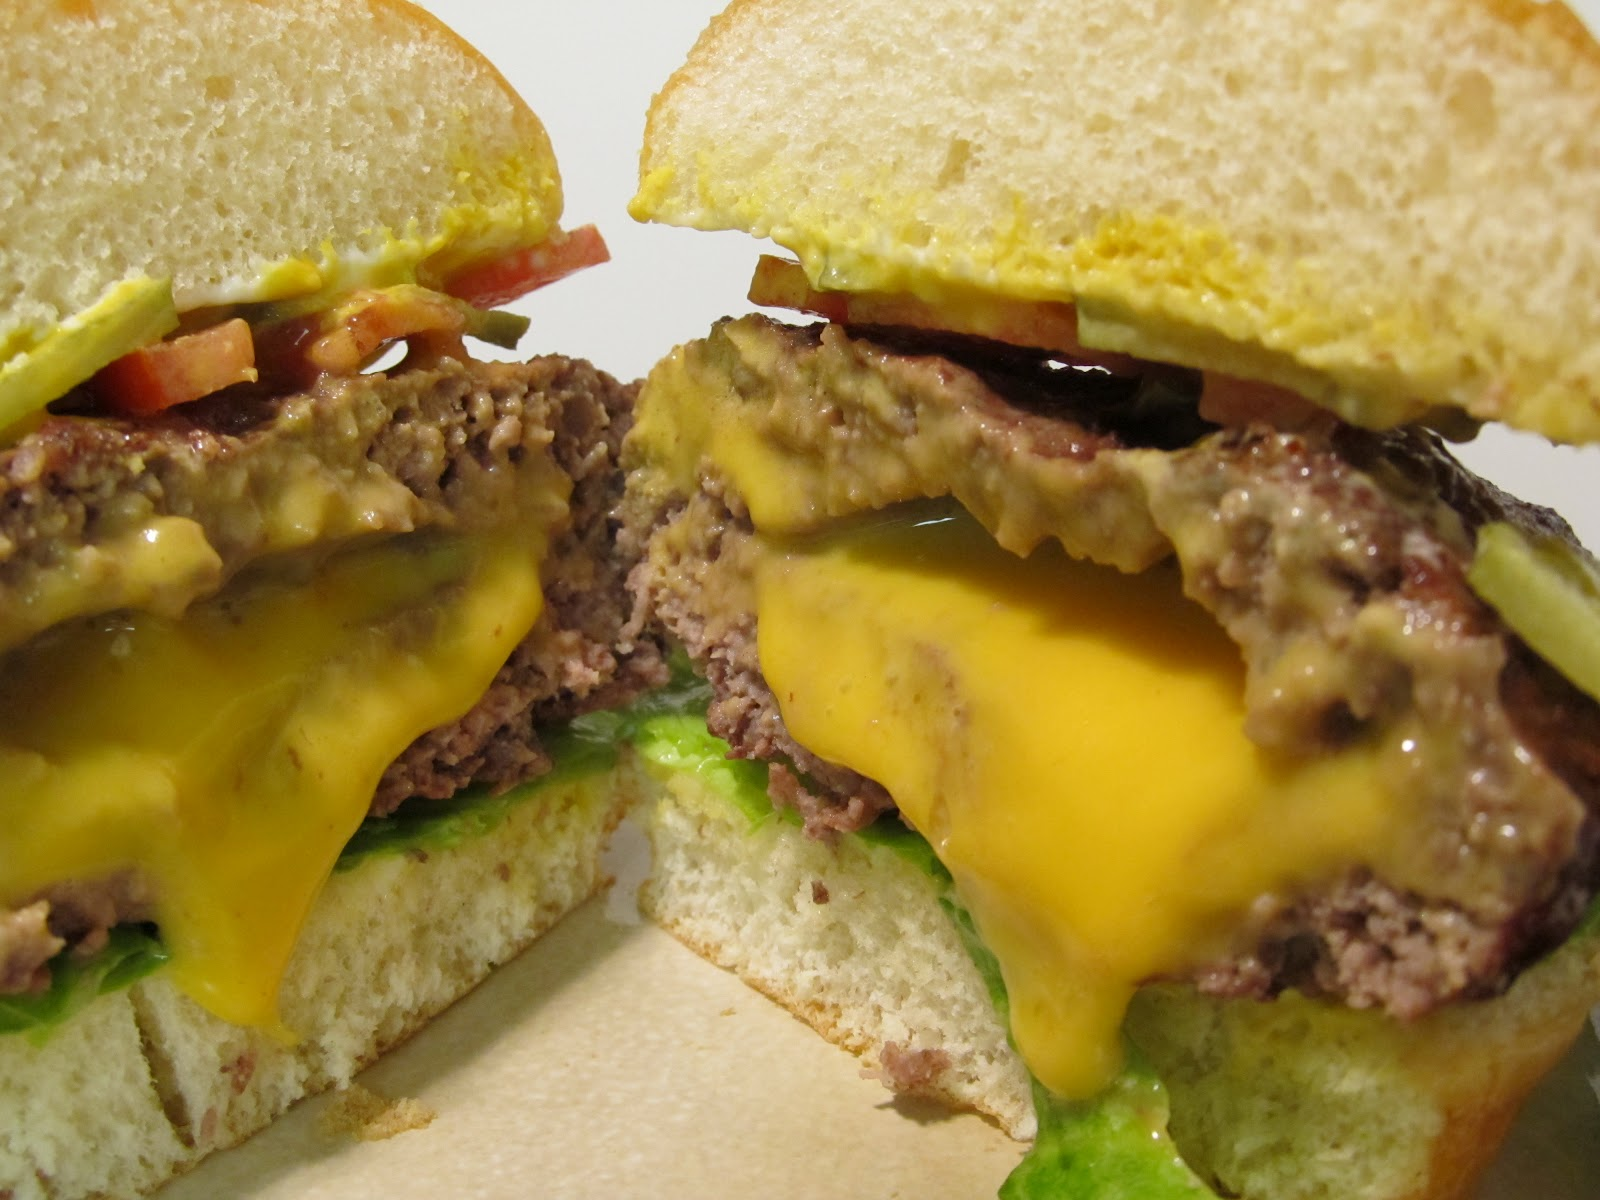 there is true controversy surrounding this burger the jucy jucy who ...